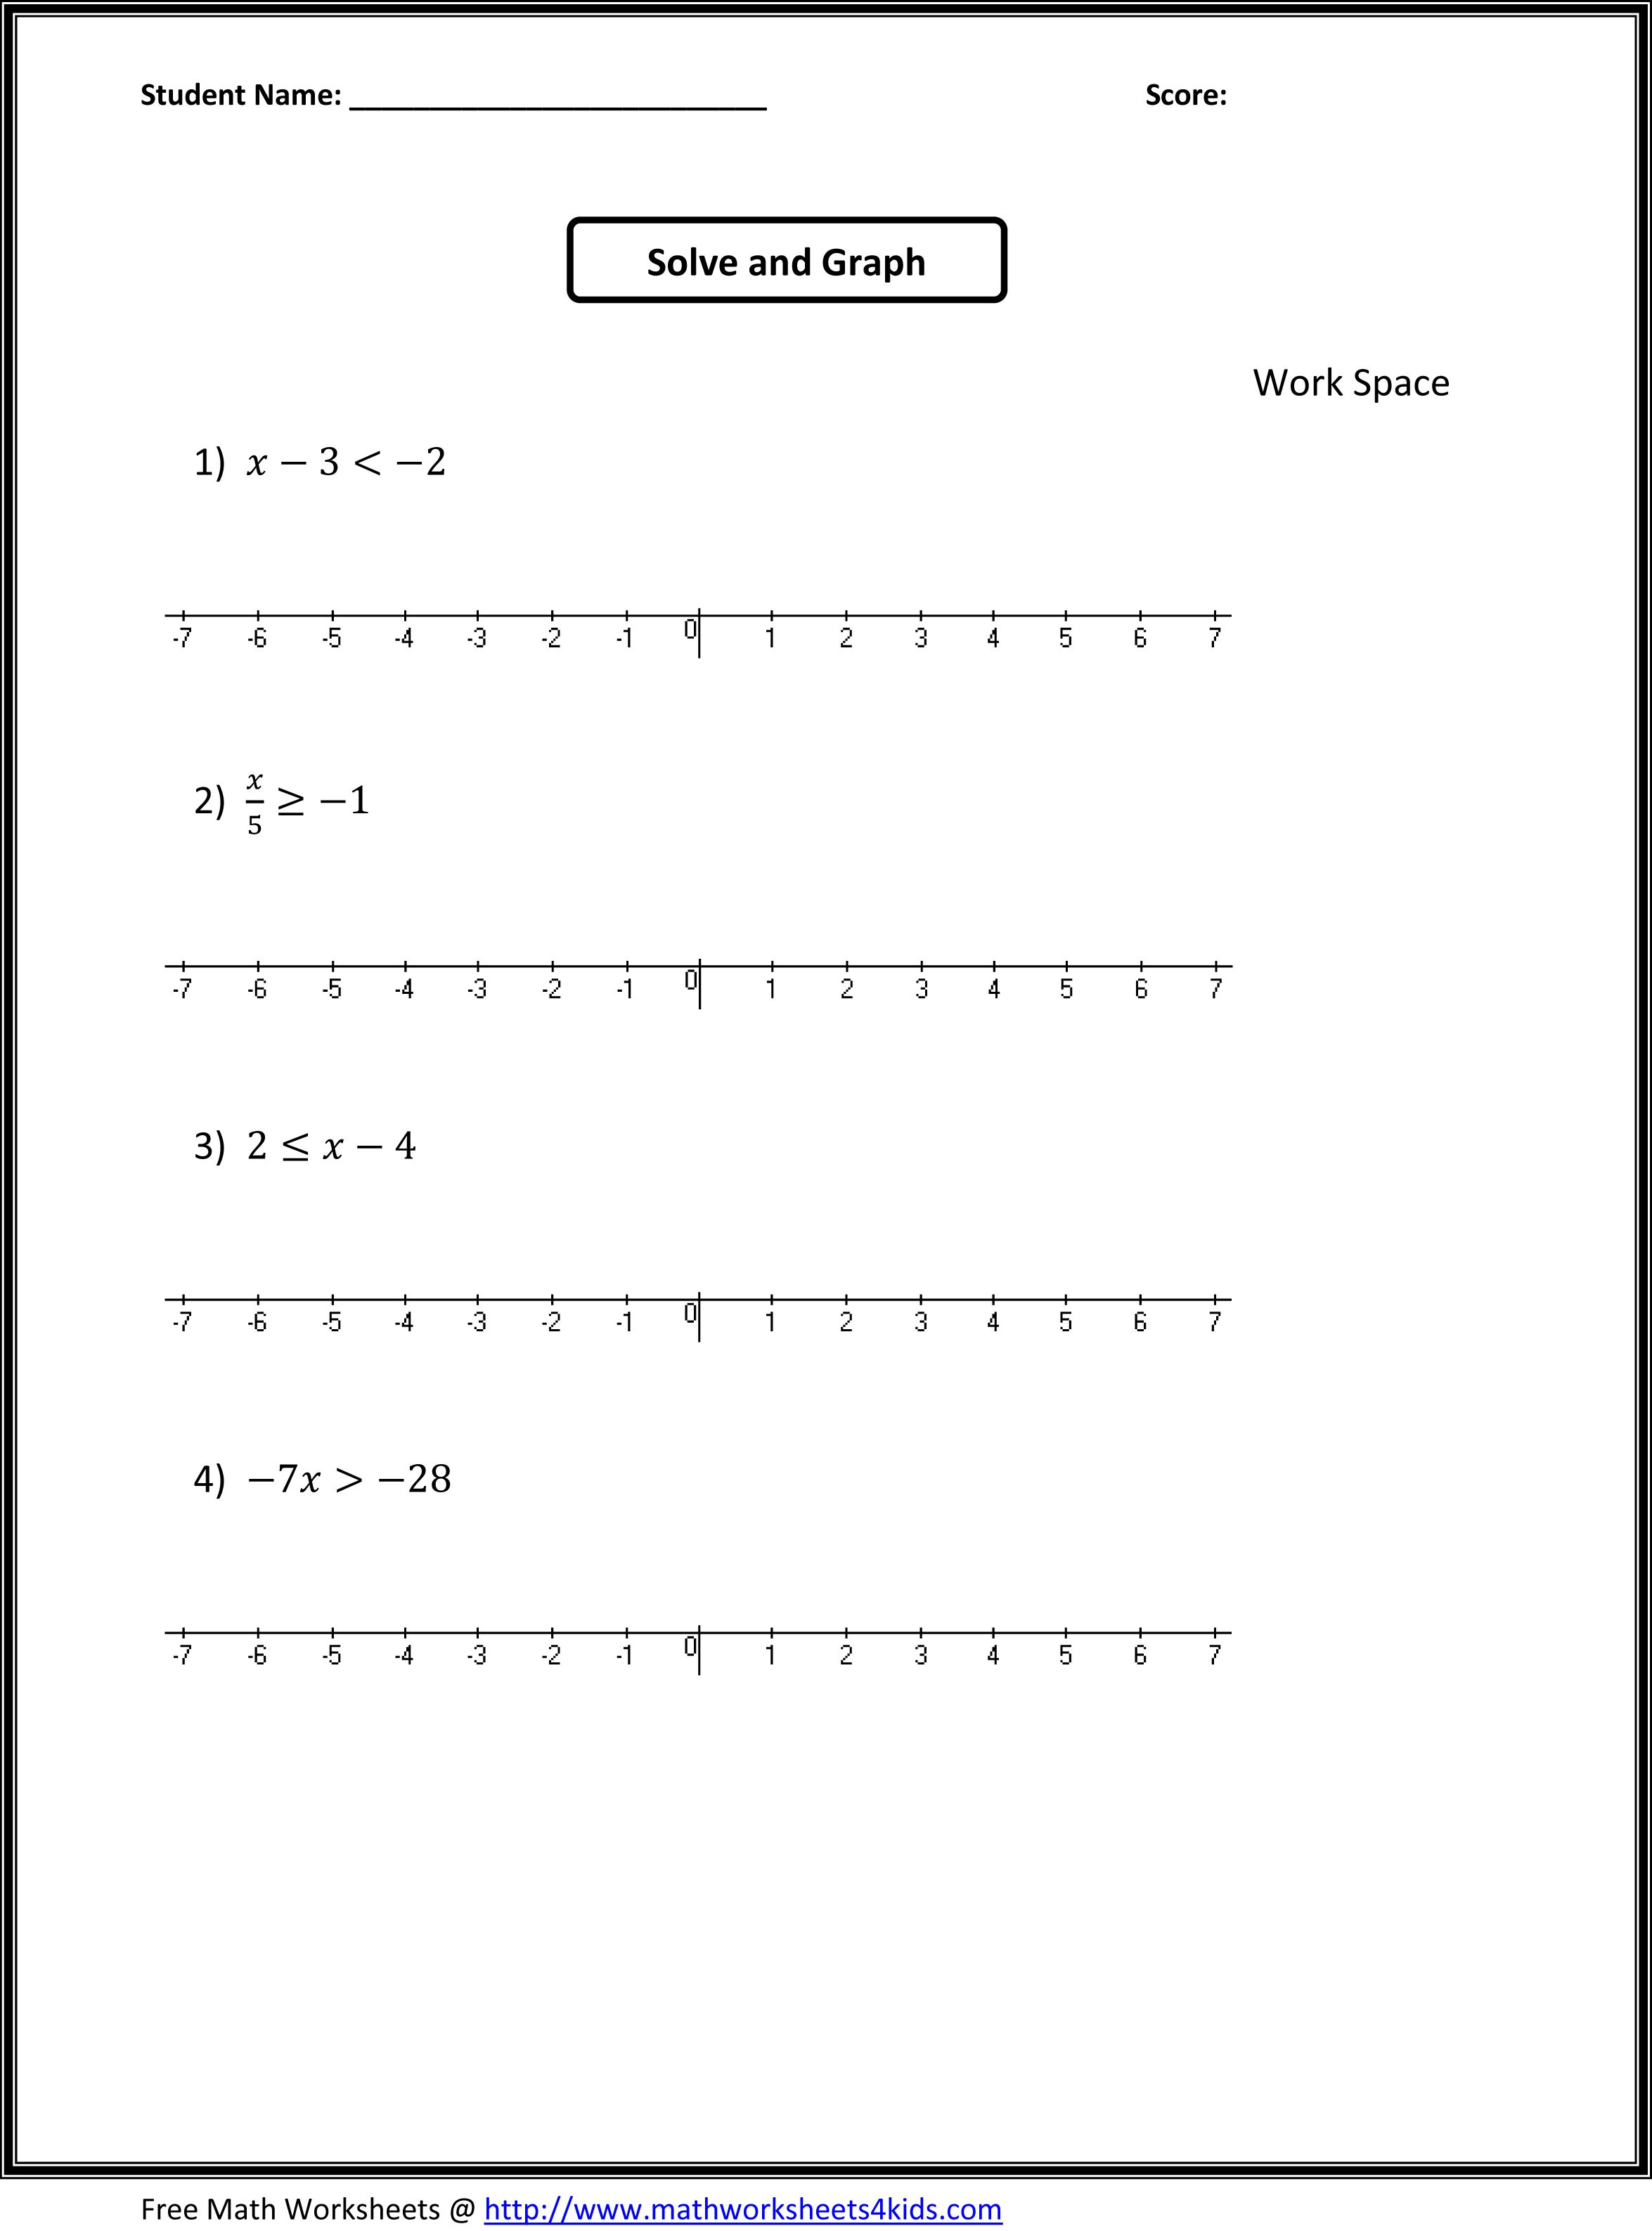 7th Grade Algebra Worksheets 7th Grade Math Worksheets – Worksheets for 7th Grade